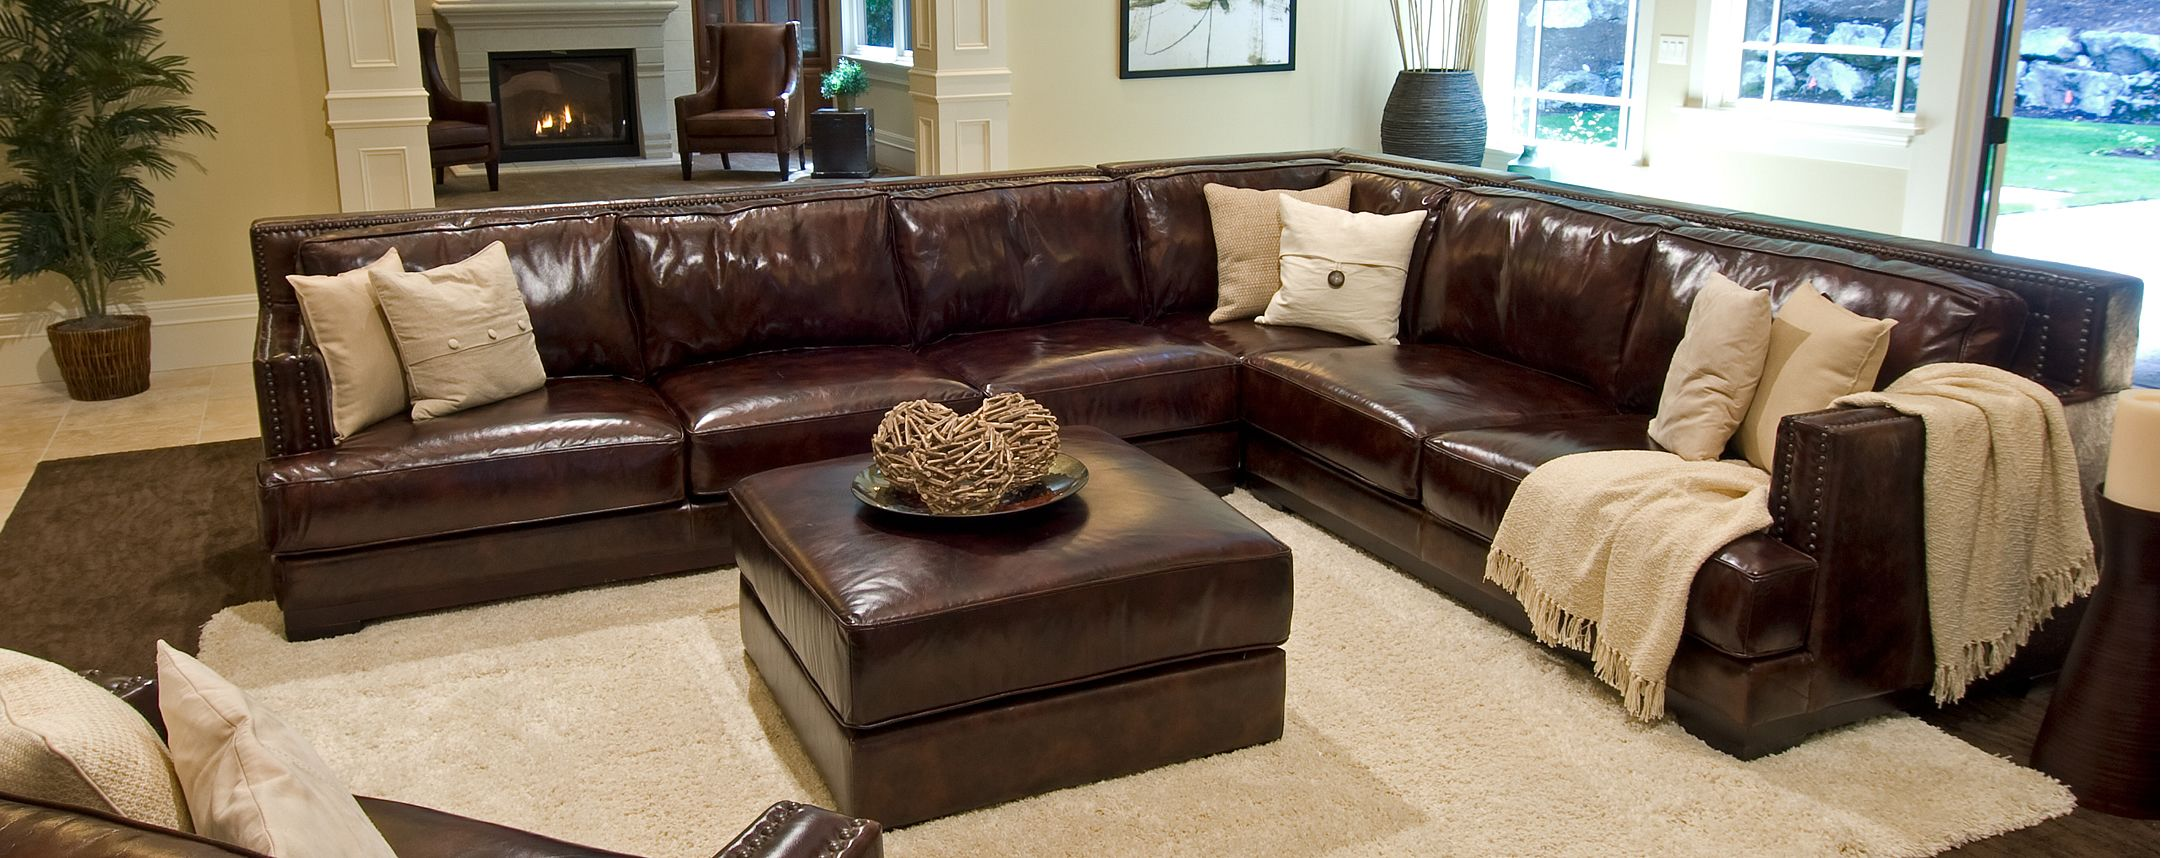 Cool Large Leather Sectional Sofas Beautiful 30 With Additional Sofa Room